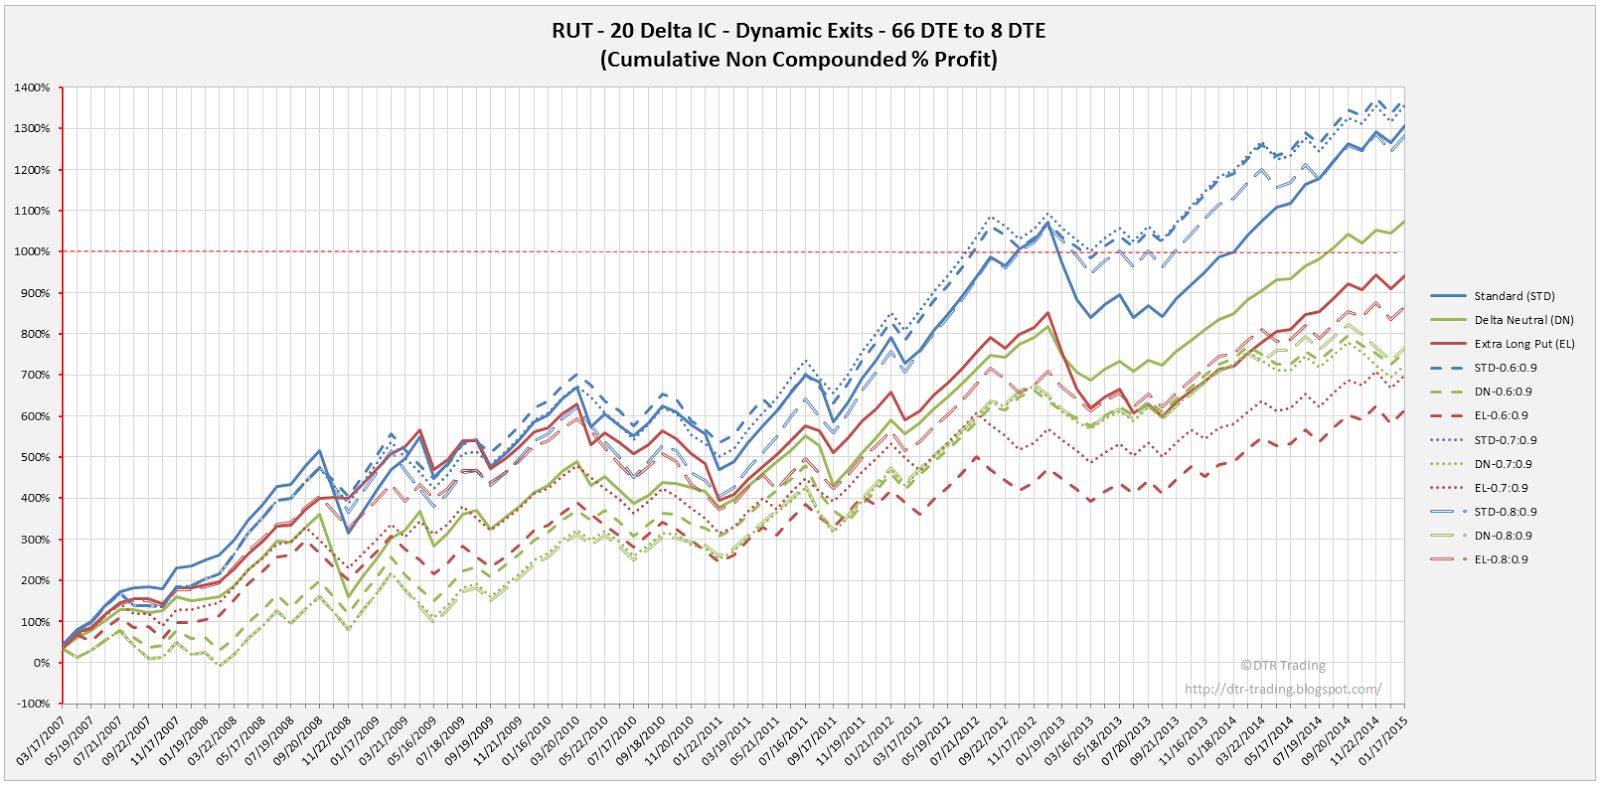 Iron Condor Dynamic Exit Equity Curves RUT 66 DTE 20 Delta Risk:Reward Versions